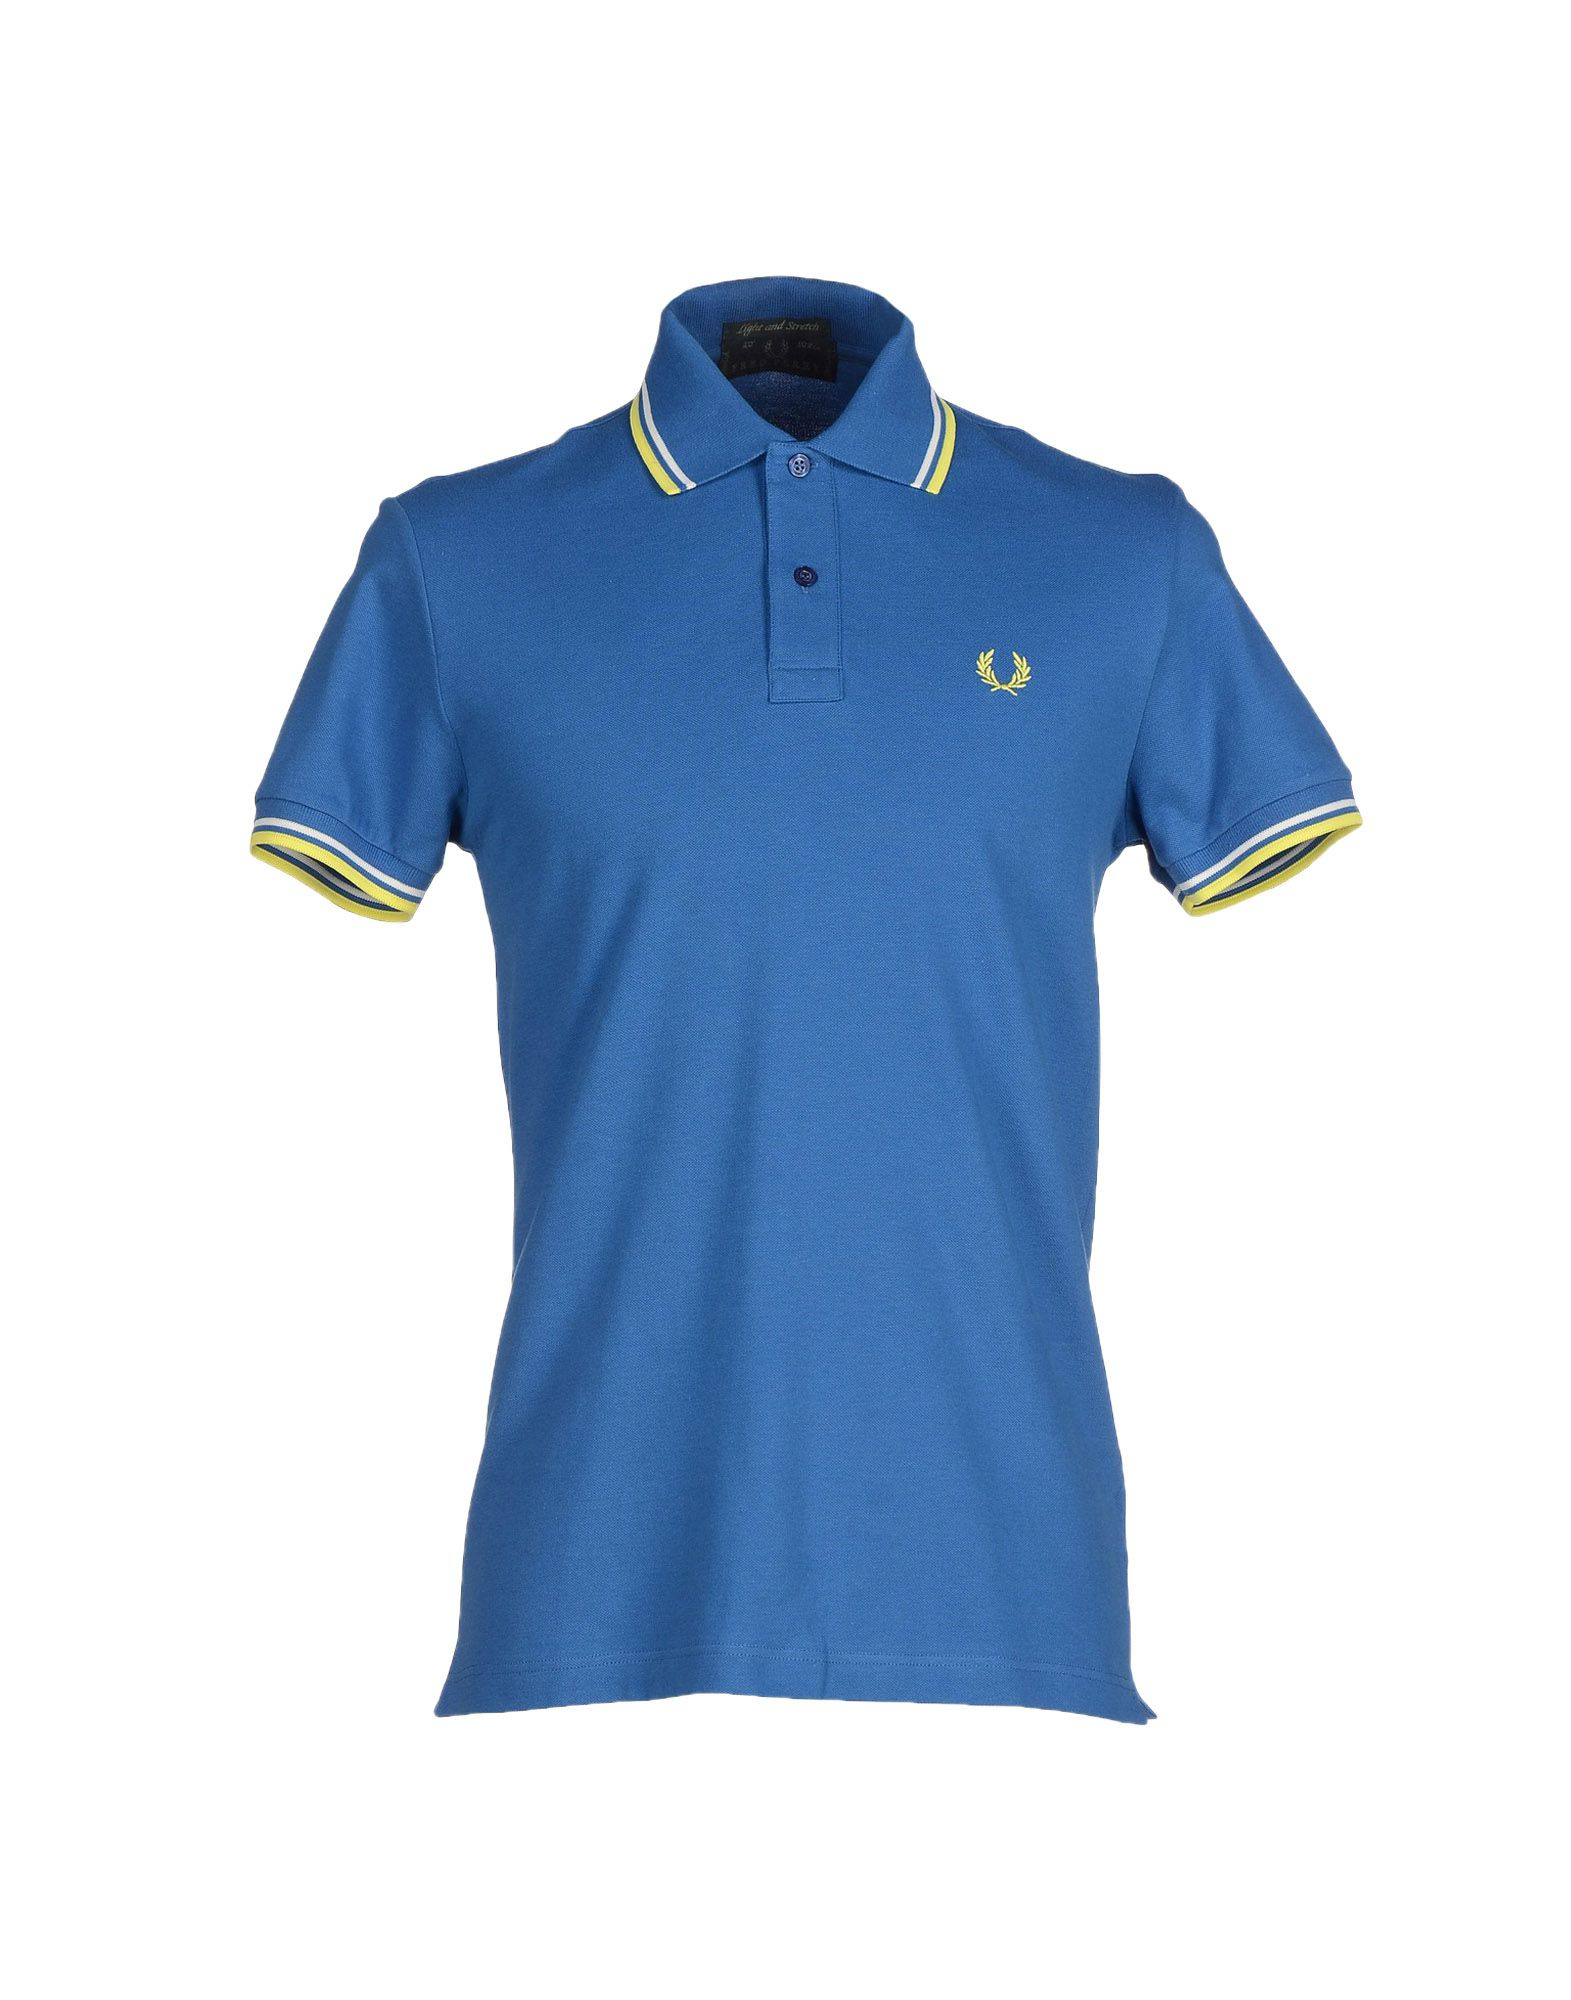 lyst fred perry polo shirt in blue for men. Black Bedroom Furniture Sets. Home Design Ideas